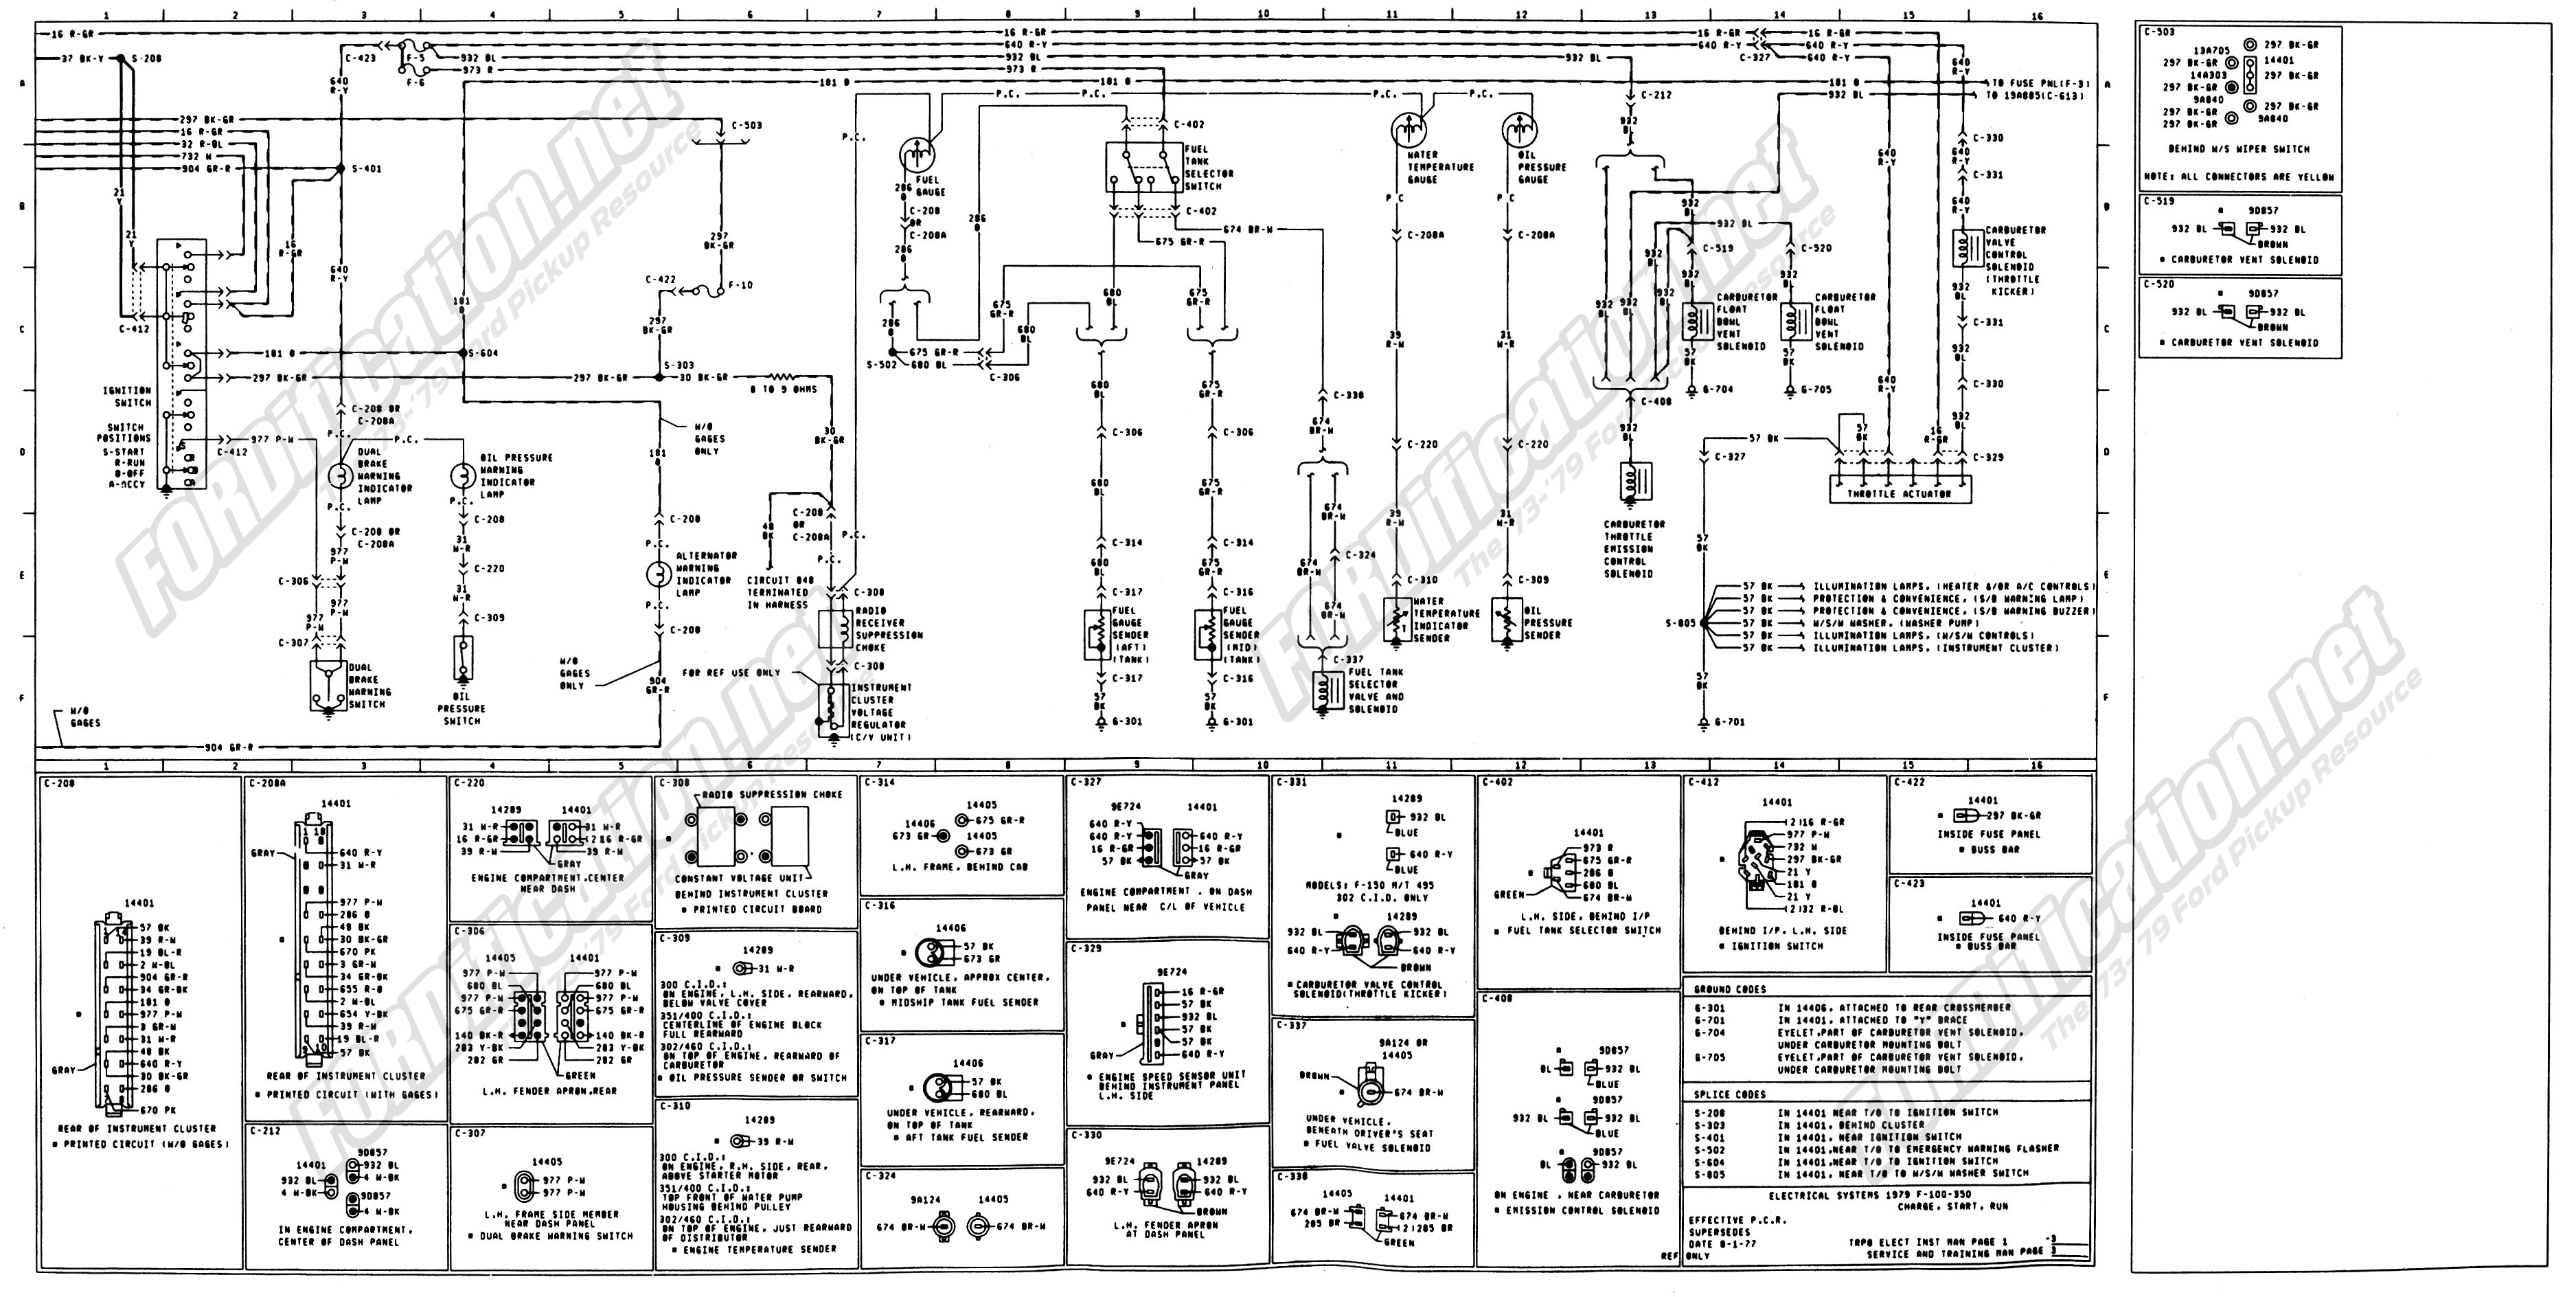 1973 1979 ford truck wiring diagrams schematics fordification net rh  fordification net 1985 Ford F-350 Wiring Diagram 1997 Ford F-350 Wiring  Diagram